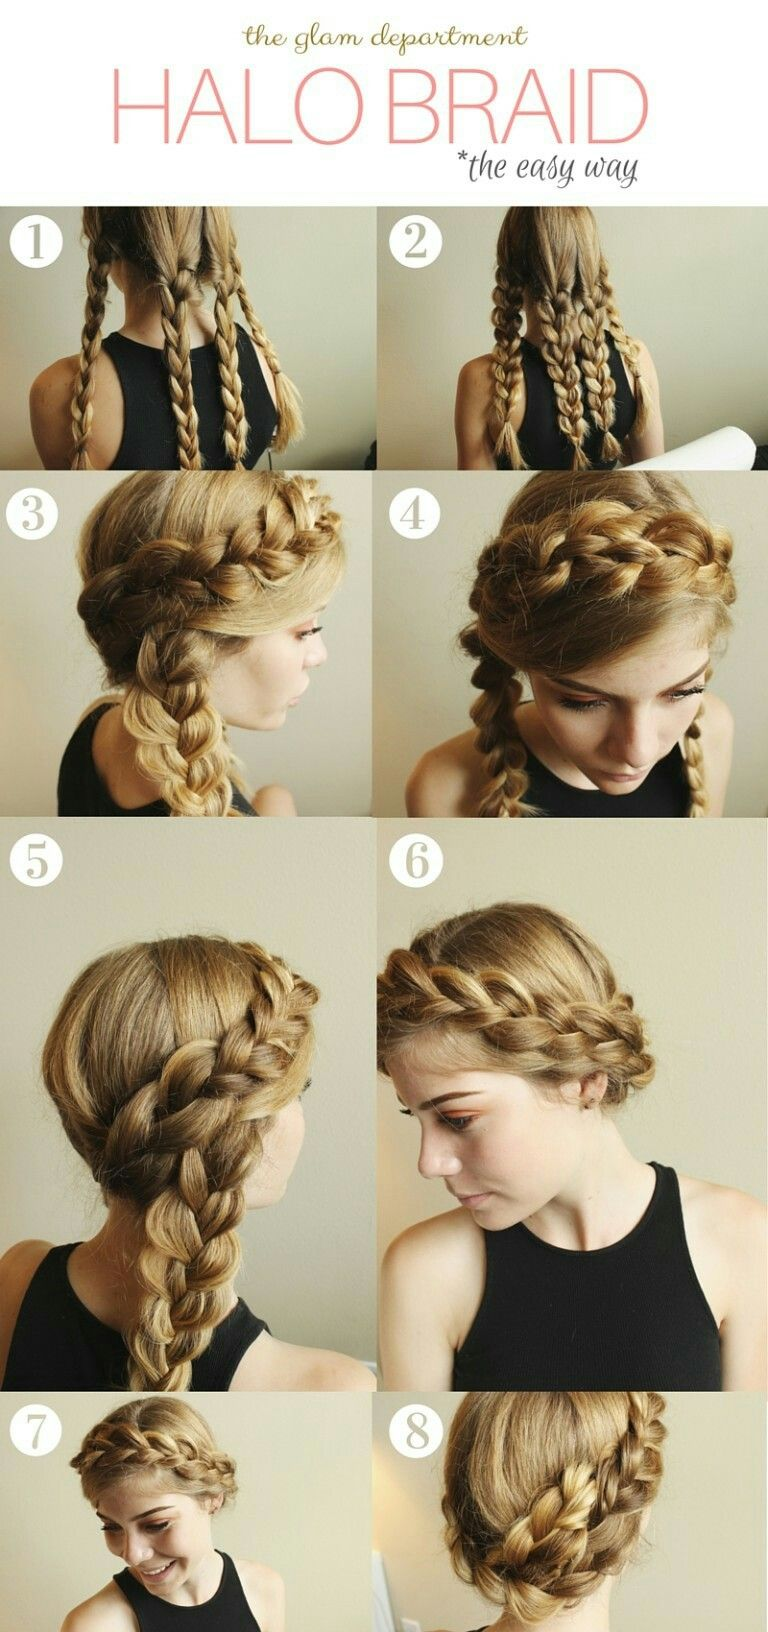 Halo braids the easy way hair pinterest halo braid easy and